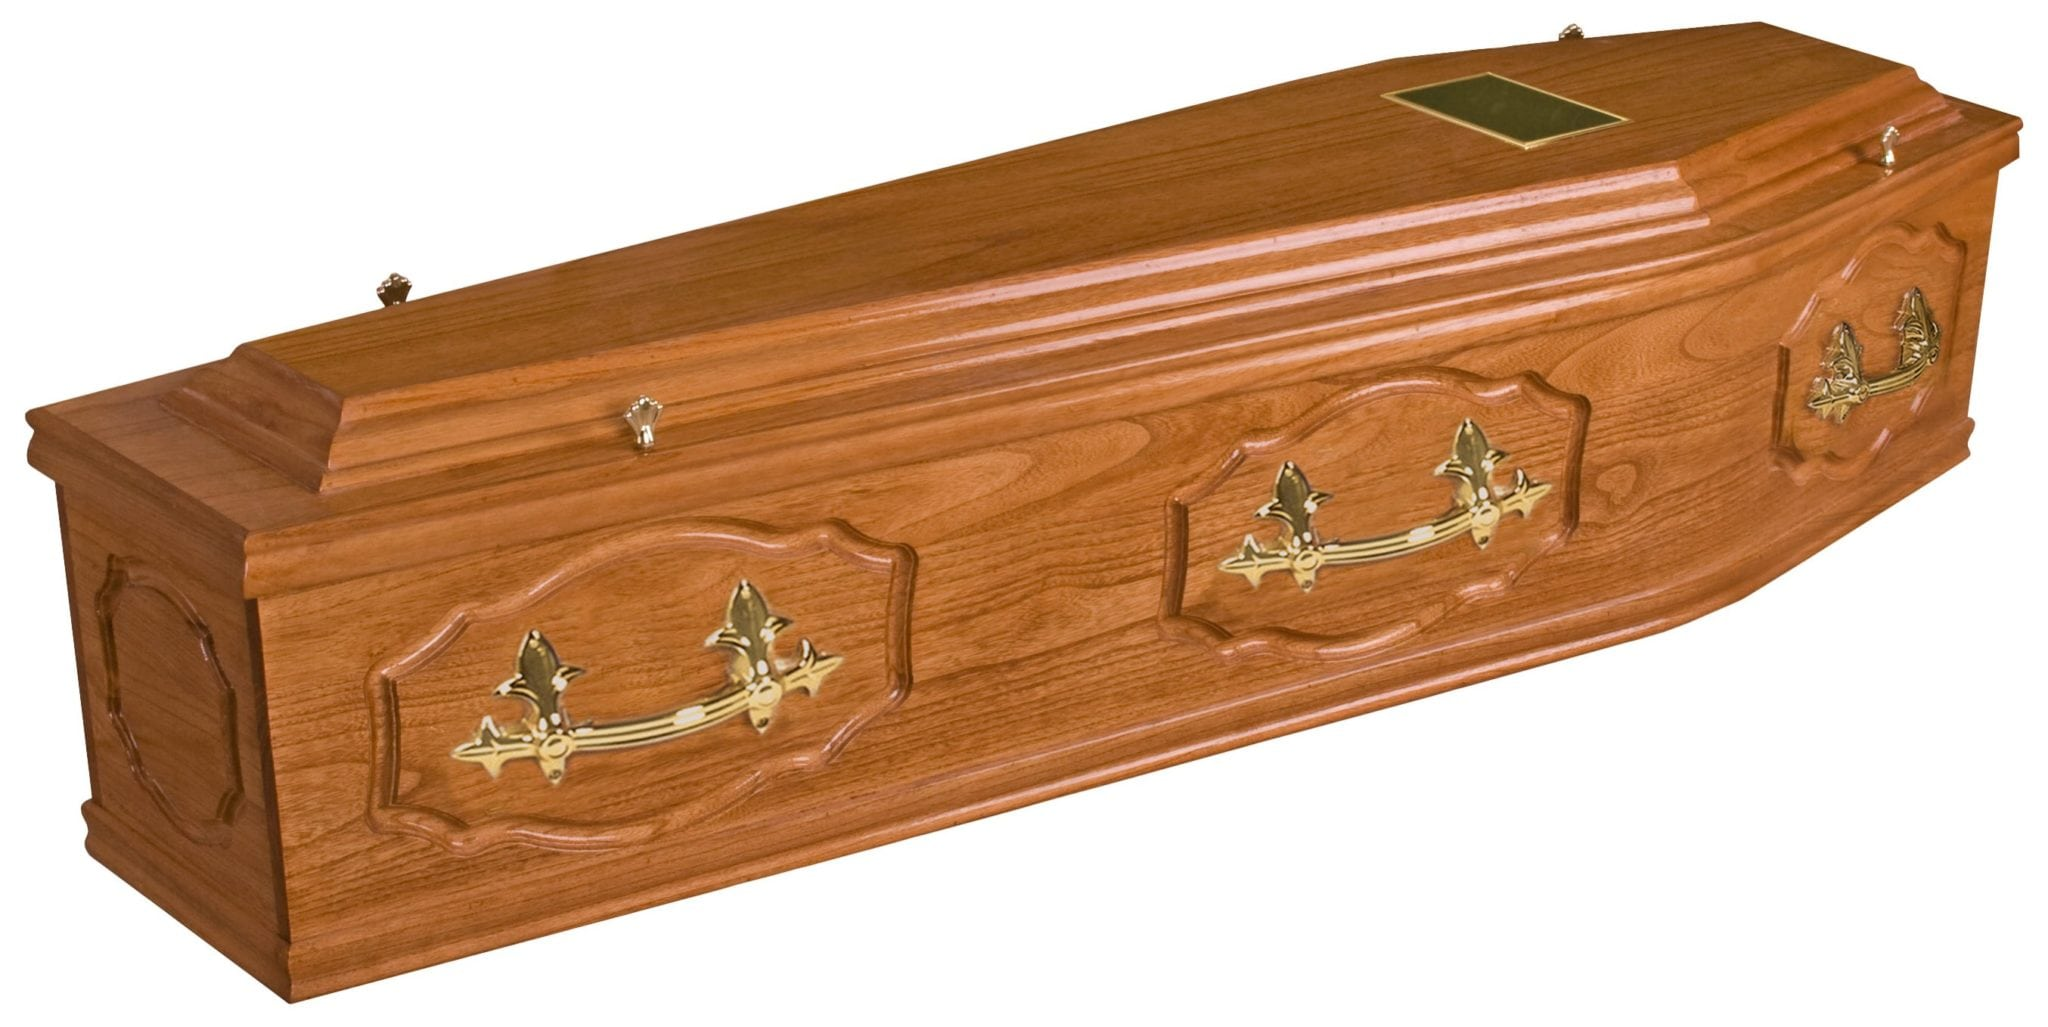 Large traditional wooden coffin